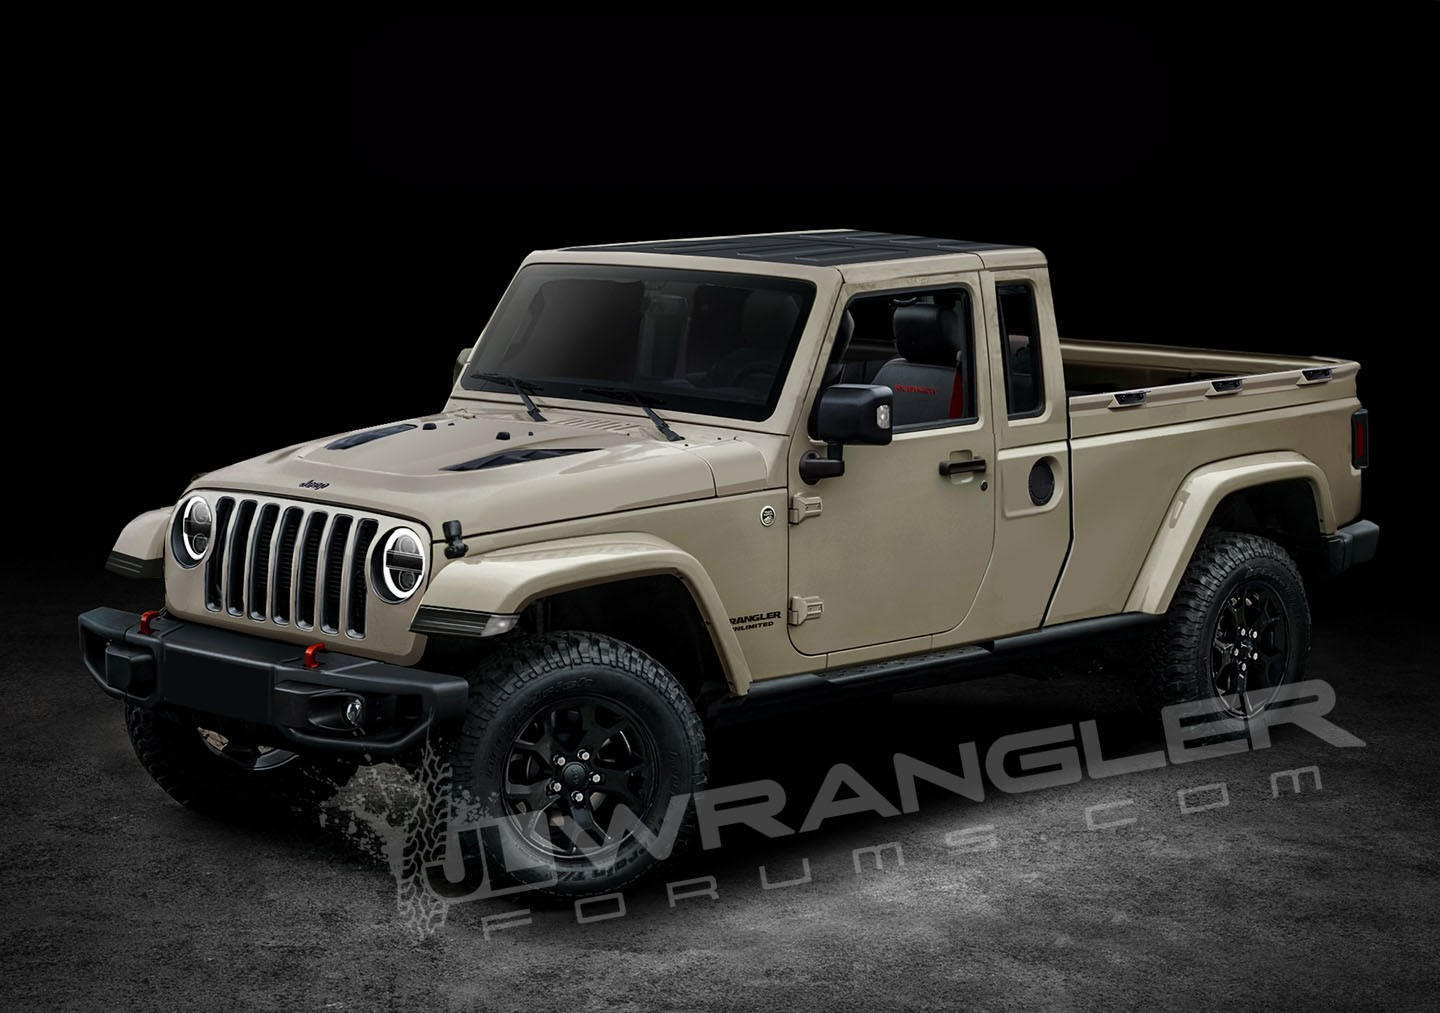 jeep wrangler pickup truck rendered based on spyshots two door model included autoevolution. Black Bedroom Furniture Sets. Home Design Ideas